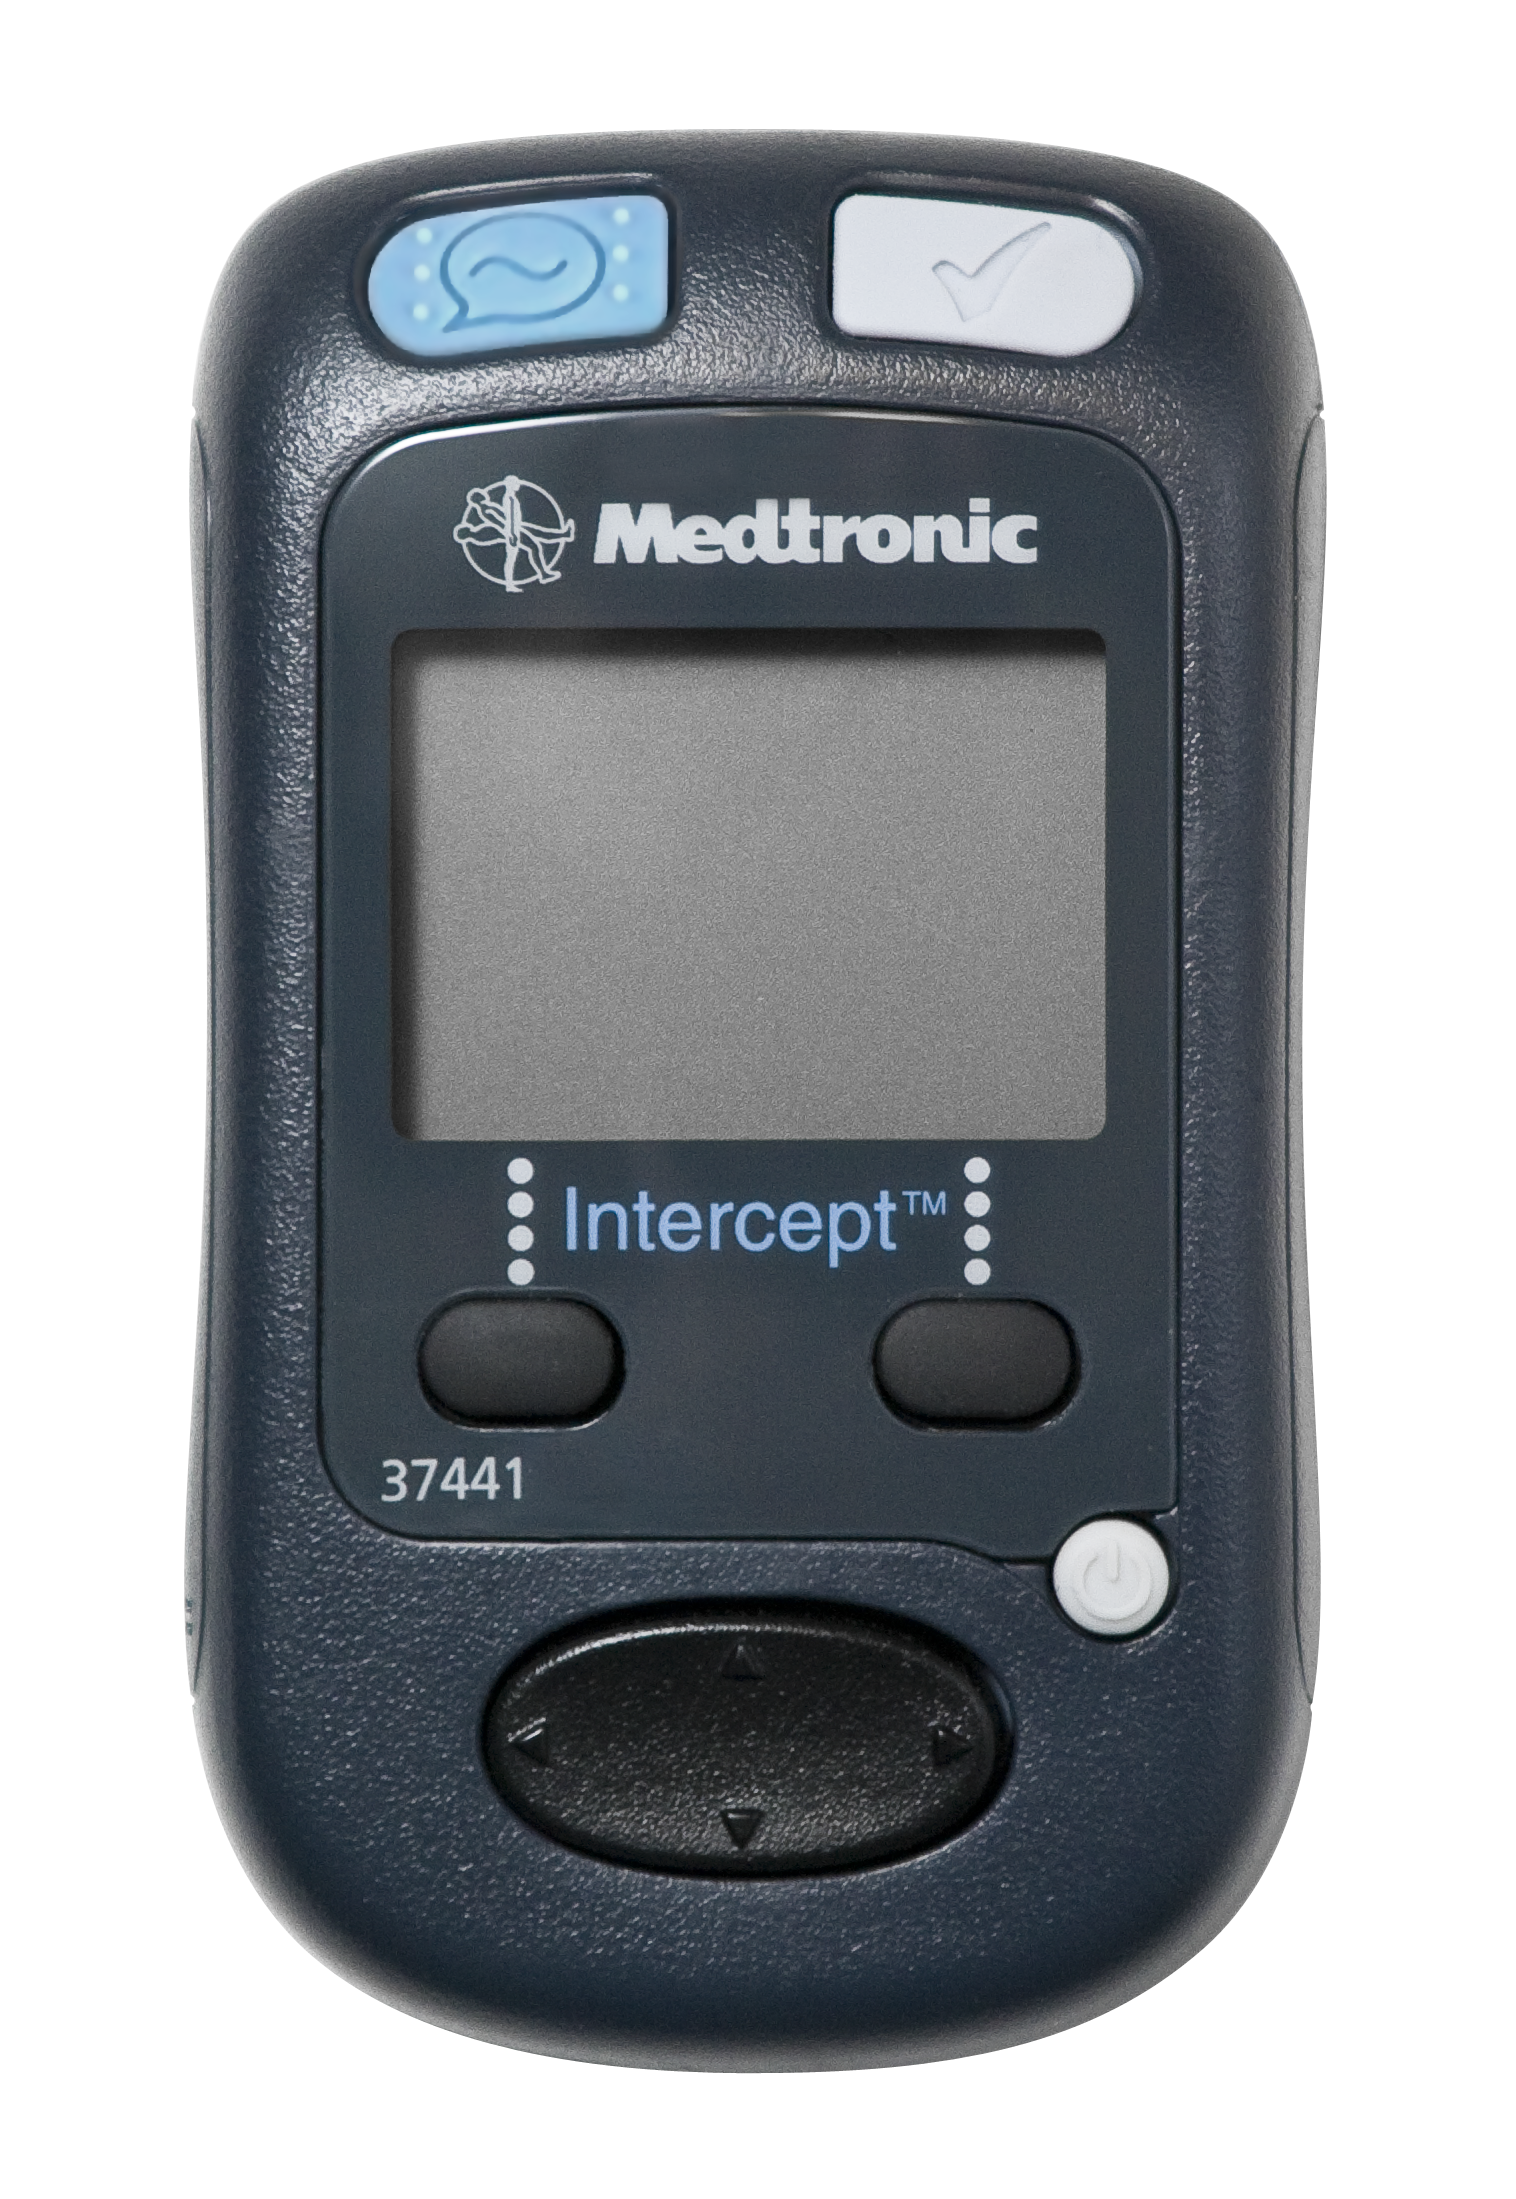 Medtronic Intercept(TM) patient programmer